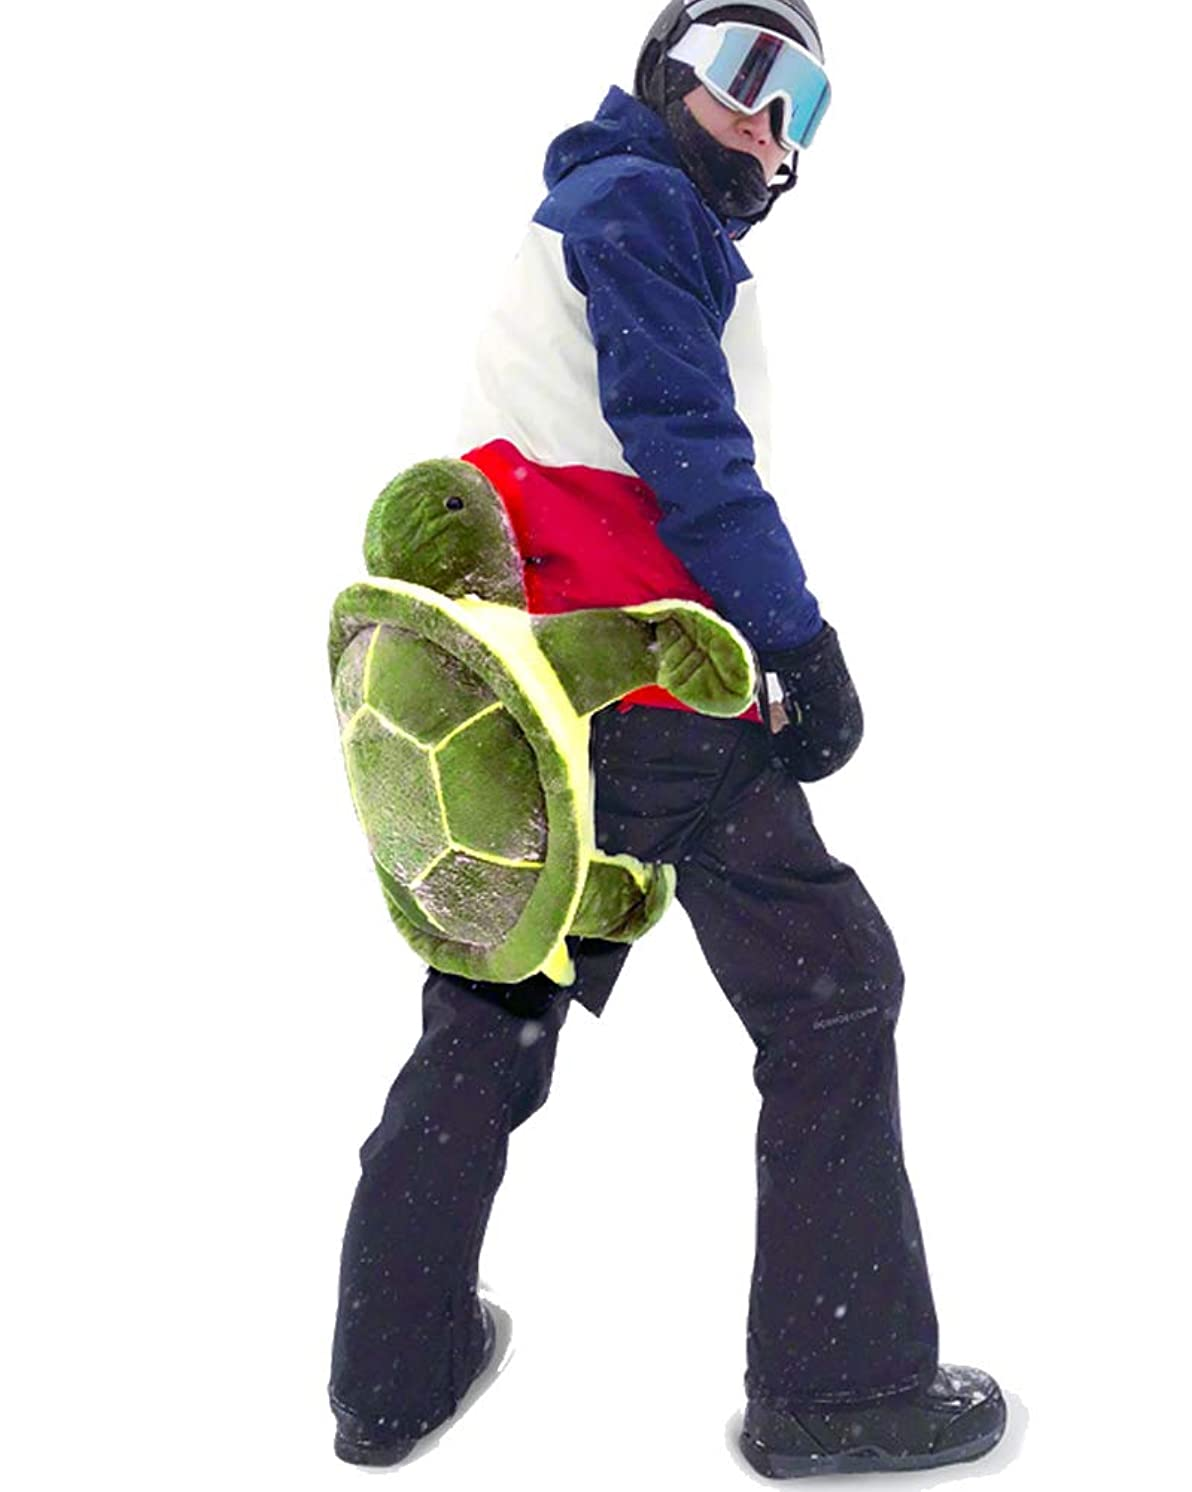 Elegeet Protective Gear for Skiing Skating Snowboarding Cute Turtle Tortoise Cushion